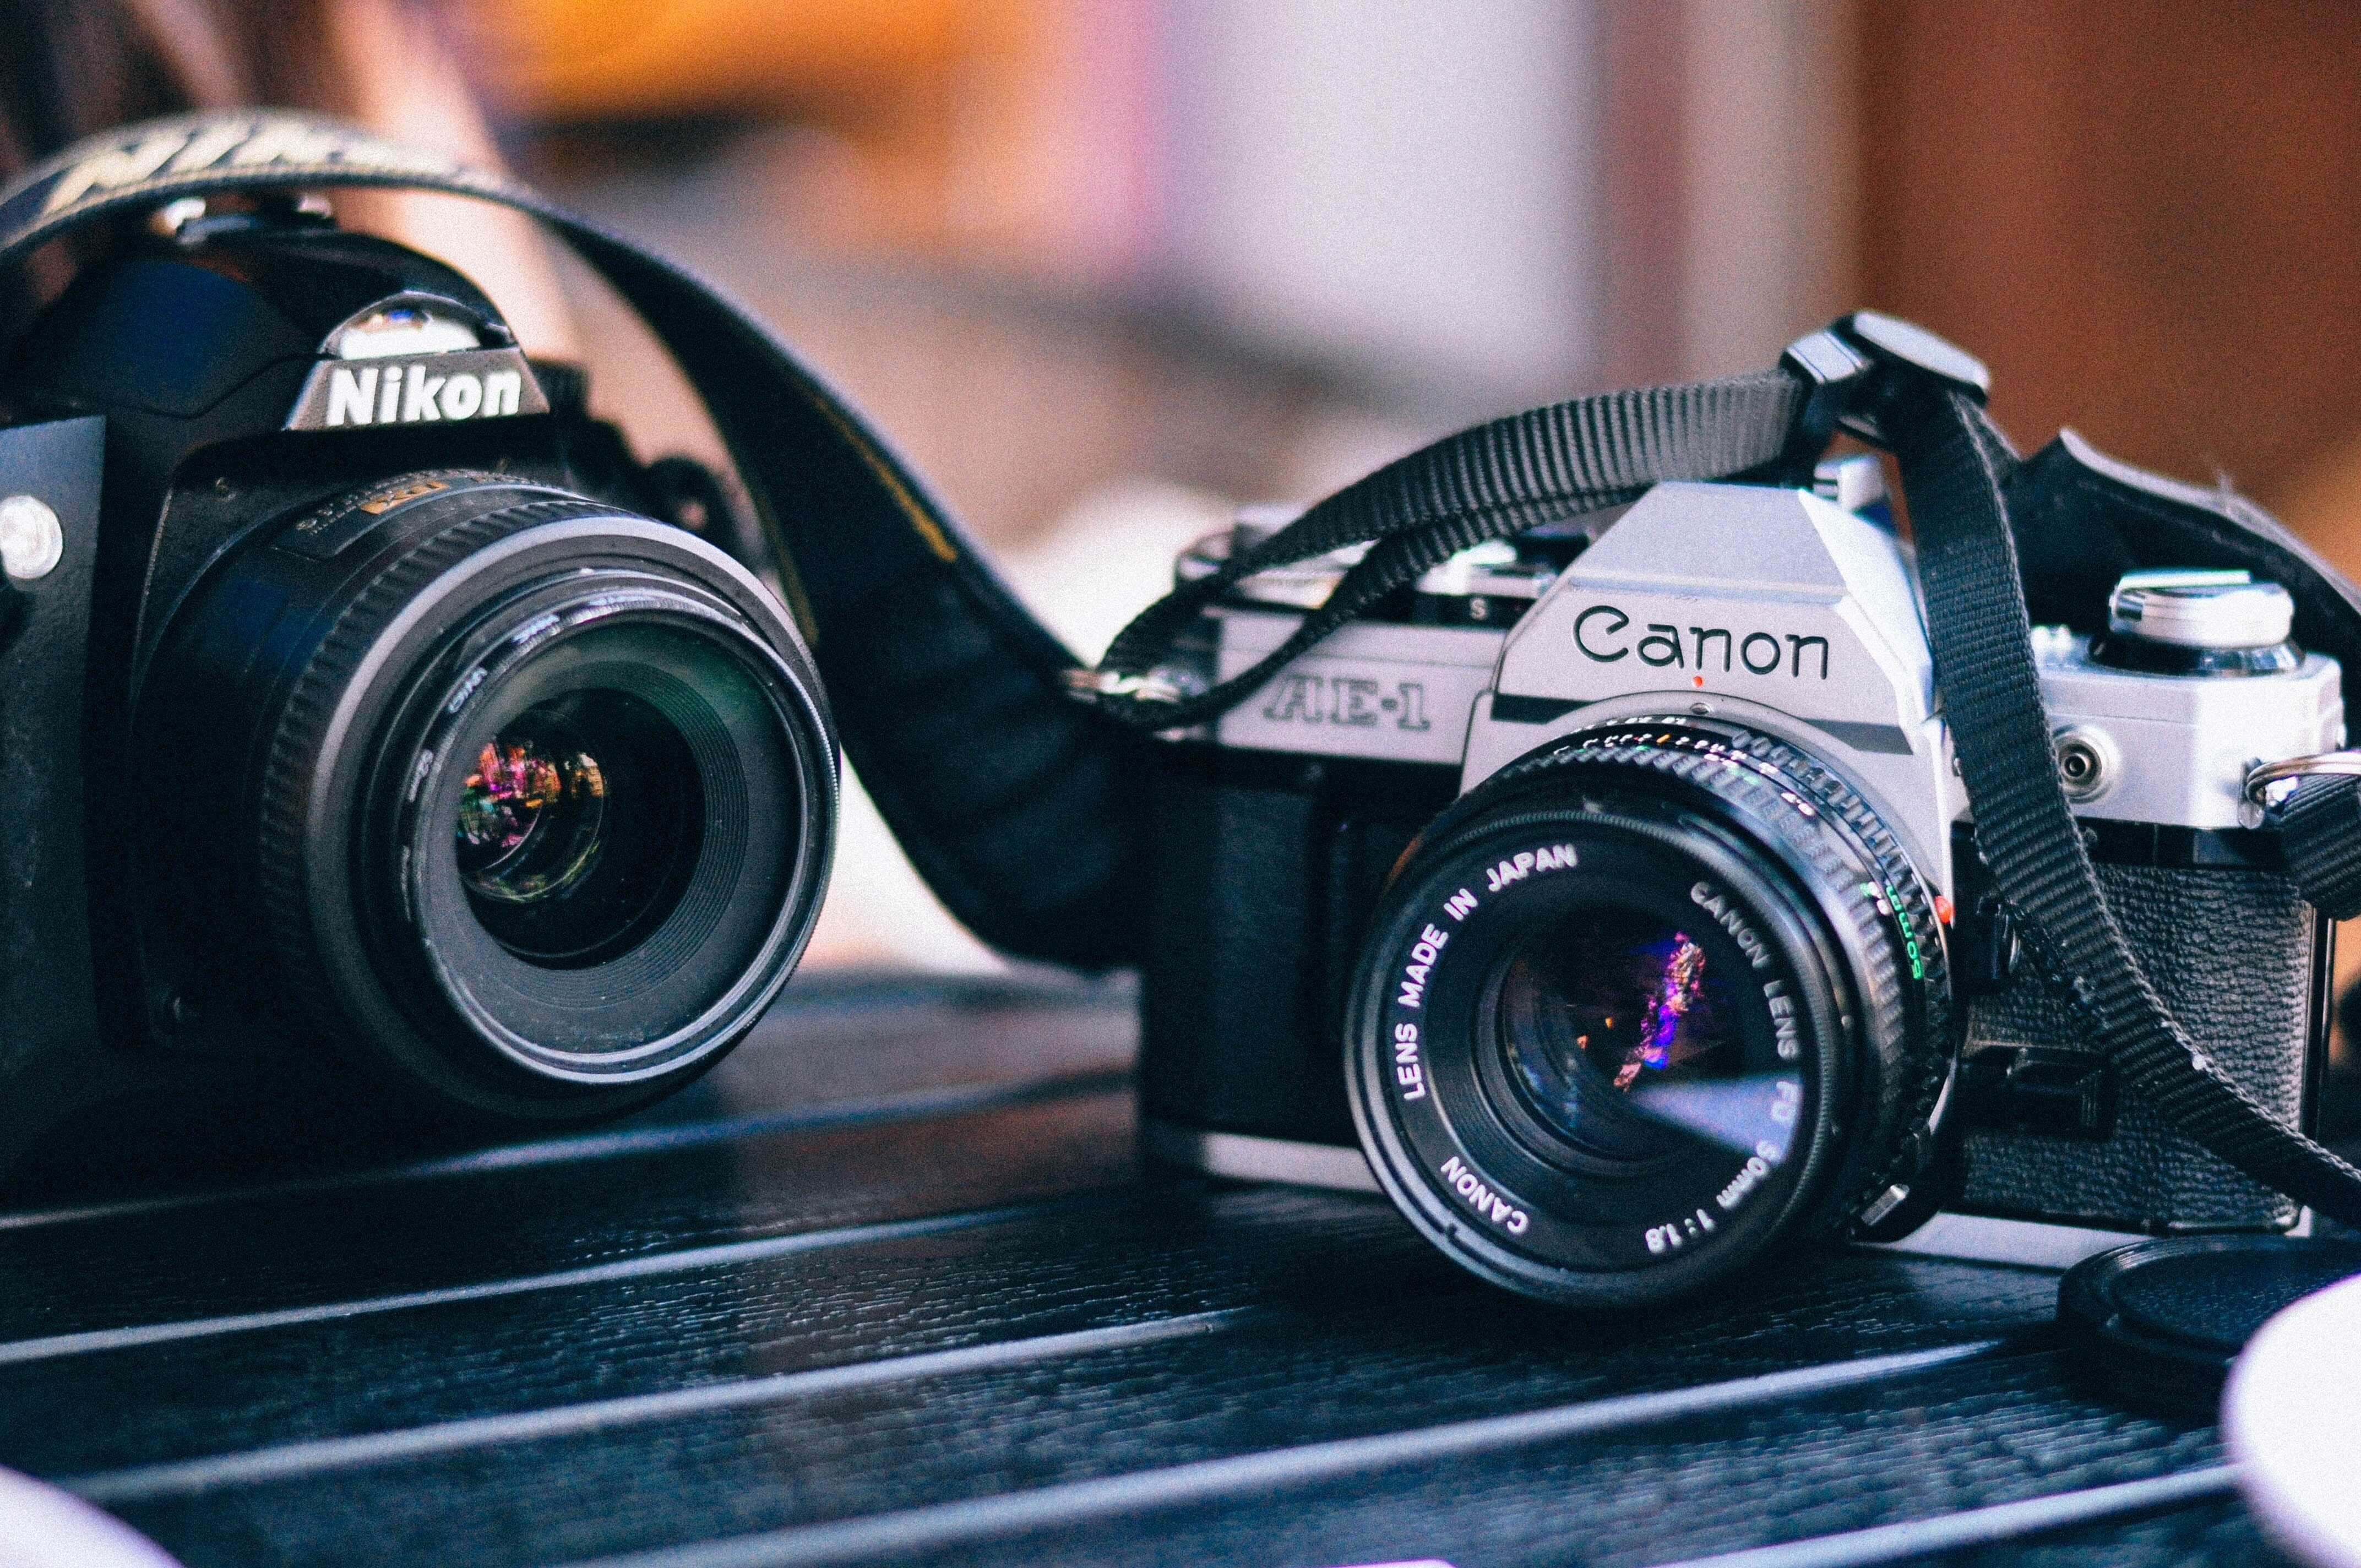 best camera for youtube, best cameras for youtube, youtube camera, video camera for youtube, best canon camera, canon camera for youtube